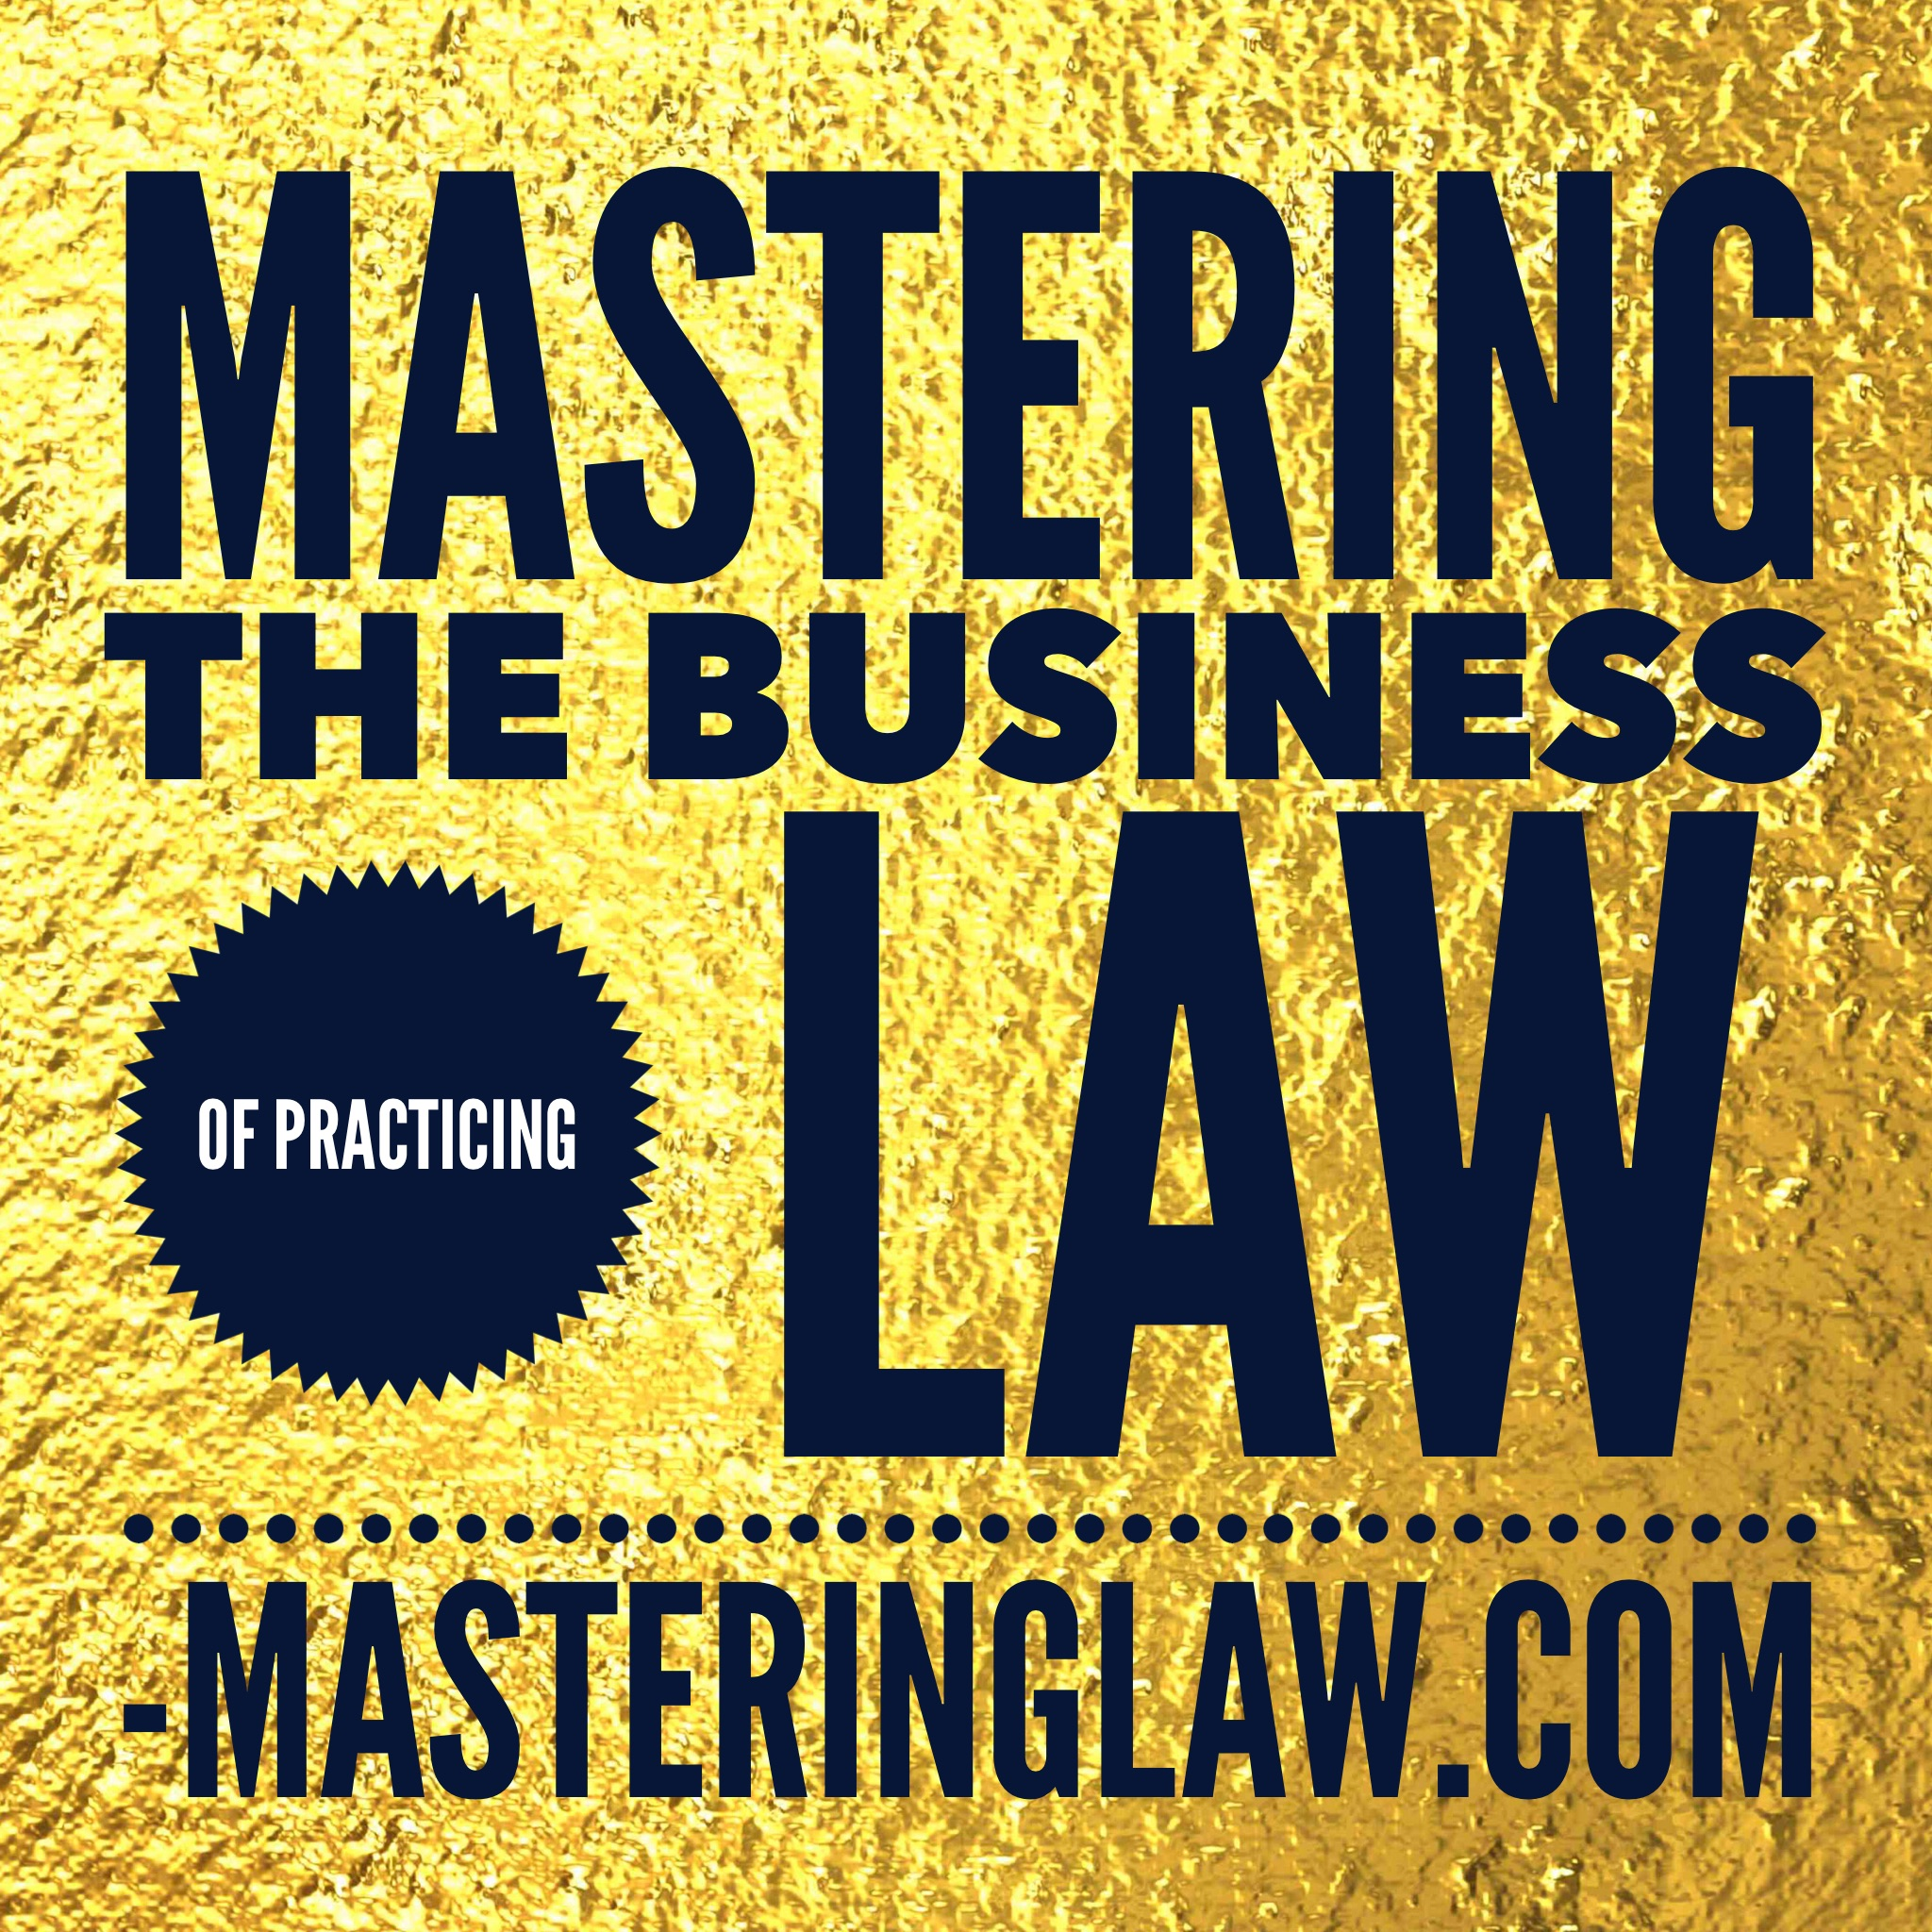 Mastering Your Law Practice: law practice management, law firm marketing, rainmaking, attorney lifestyle